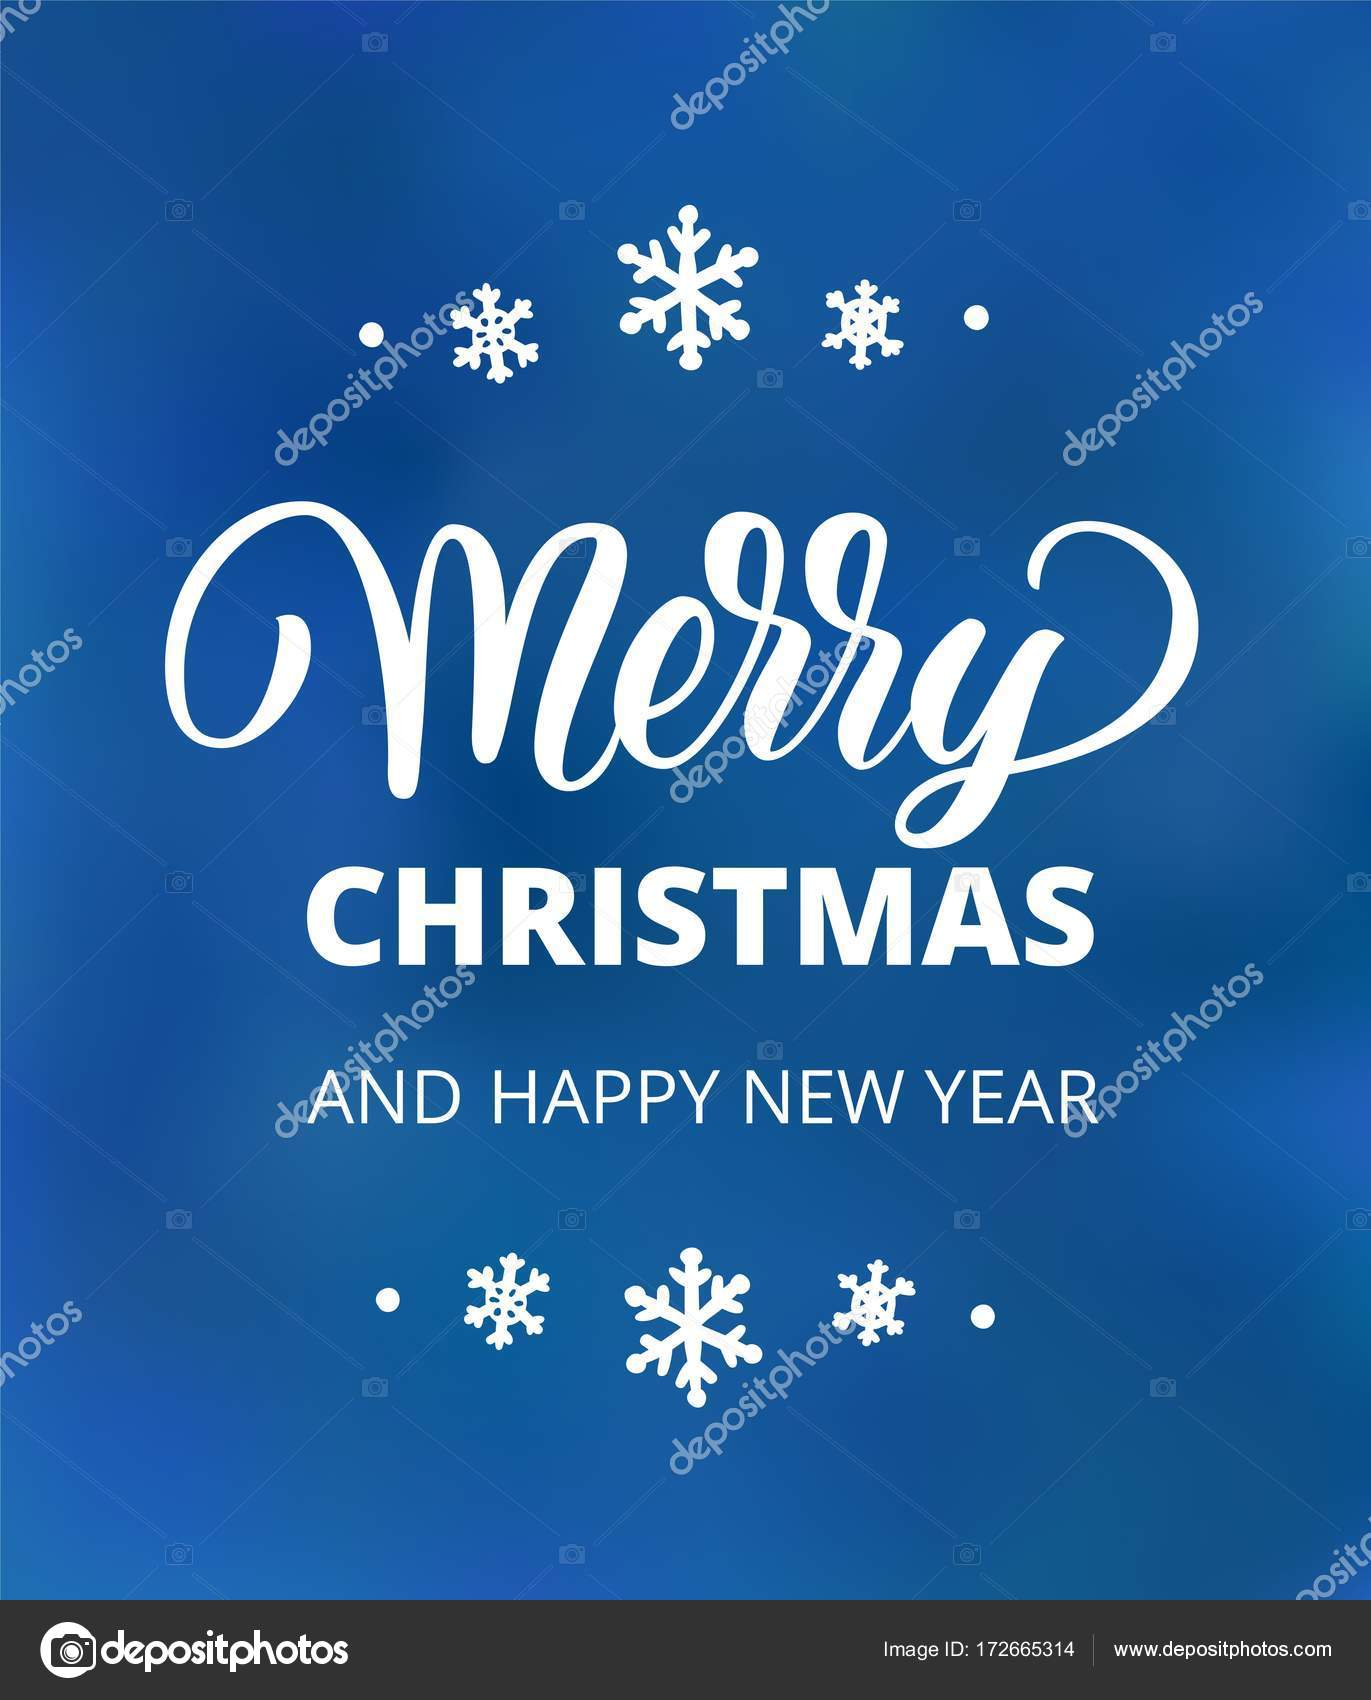 Merry christmas and happy new year text holiday greetings quote merry christmas and happy new year text holiday greetings quote hand drawn lettering on blue background great for christmas and new year cards posters kristyandbryce Images